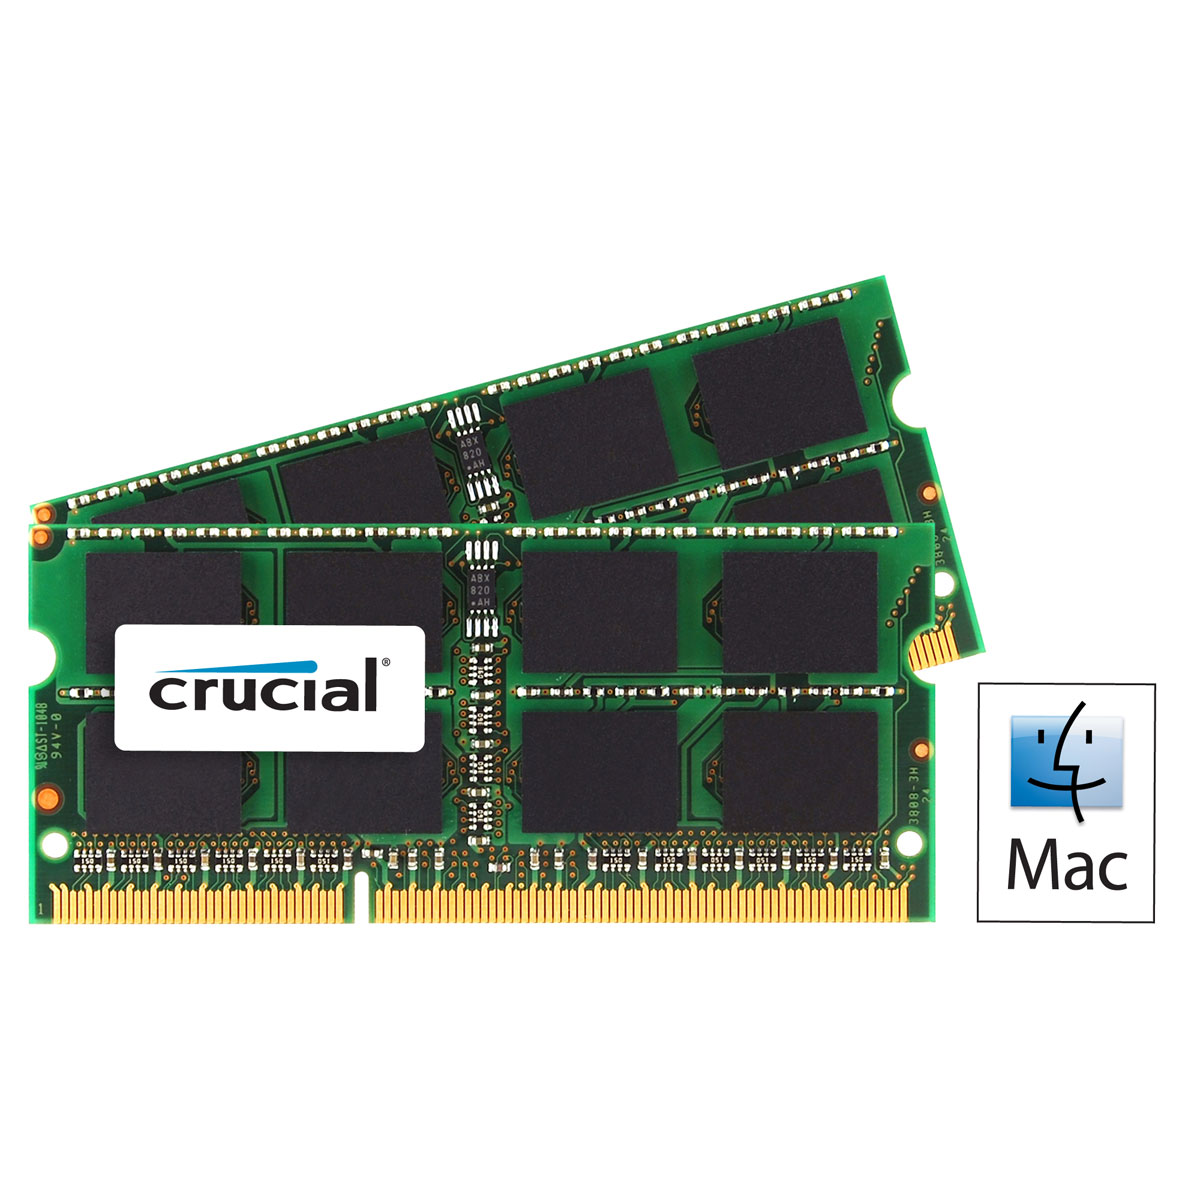 Mémoire PC Crucial for Mac SO-DIMM 8 Go (2 x 4 Go) DDR3L 1866 MHz CL13 Kit Dual Channel RAM SO-DIMM DDR3L PC14900 - CT2C4G3S186DJM (garantie à vie par Crucial)